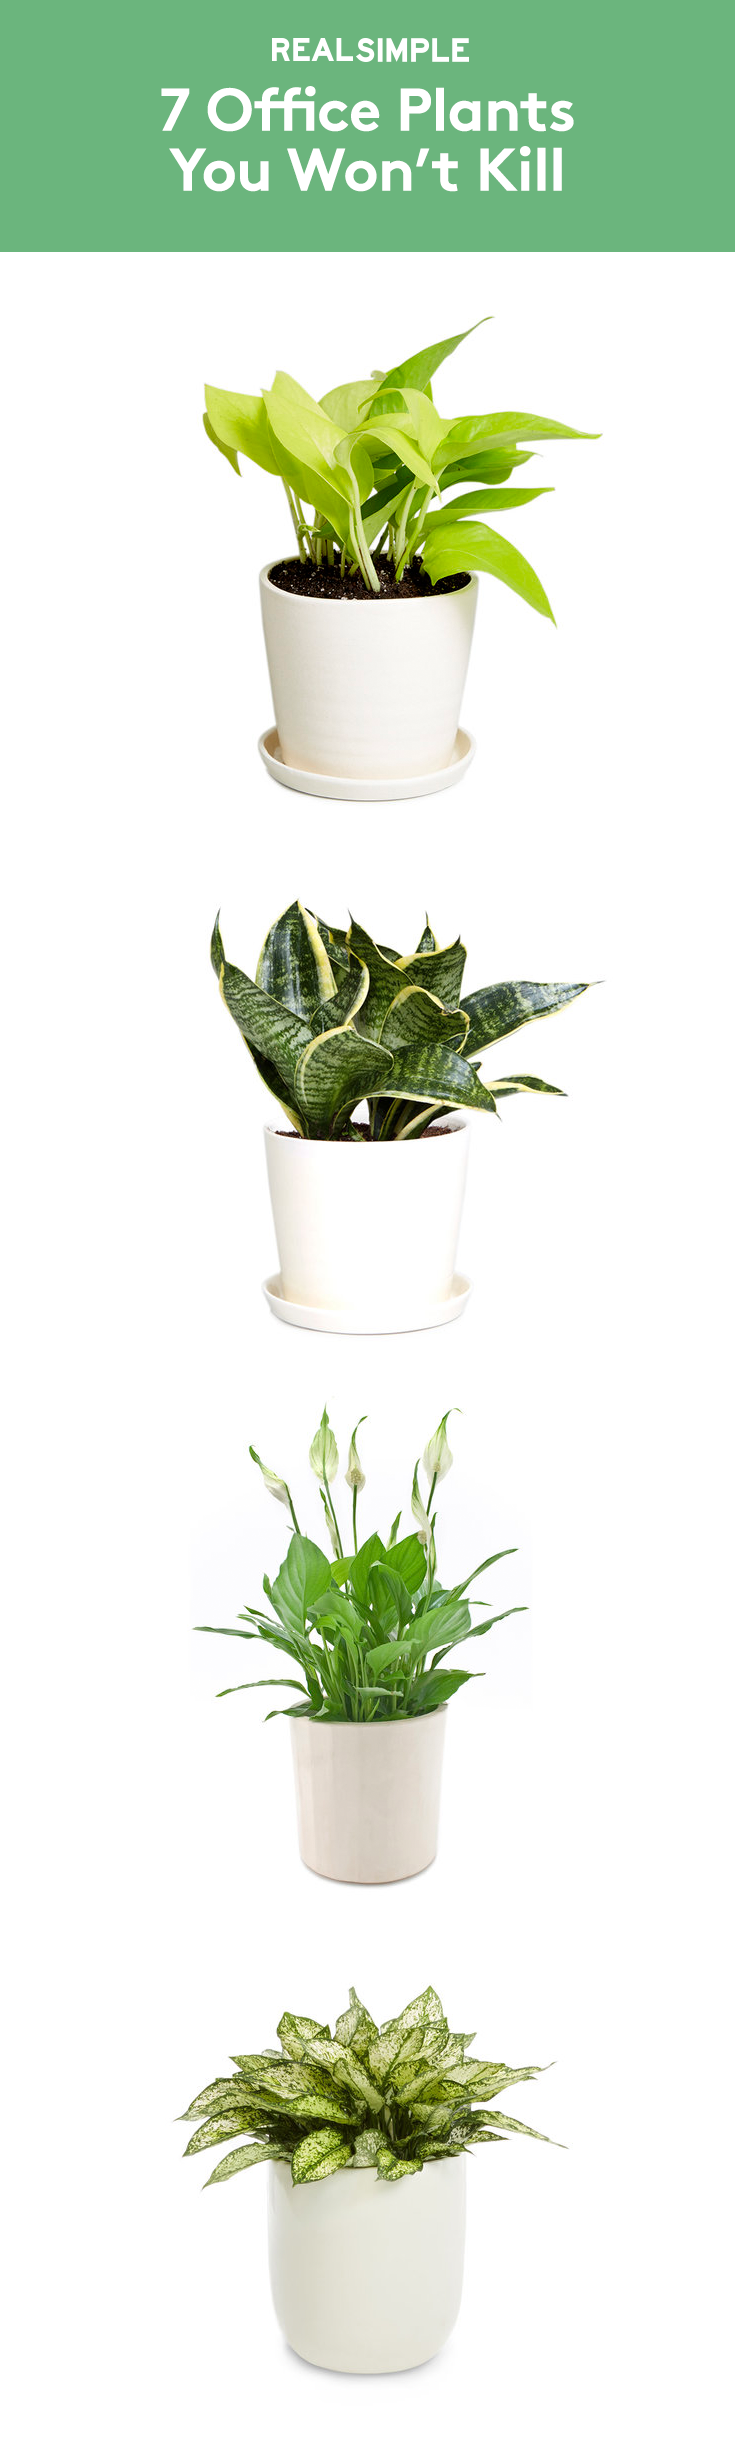 Christopher Satch, The Sillu0027s In House Plant Expert, Shares The Best Indoor  Plants That Can Withstand Limited Sunlight, Cold Temps, And Little Water.